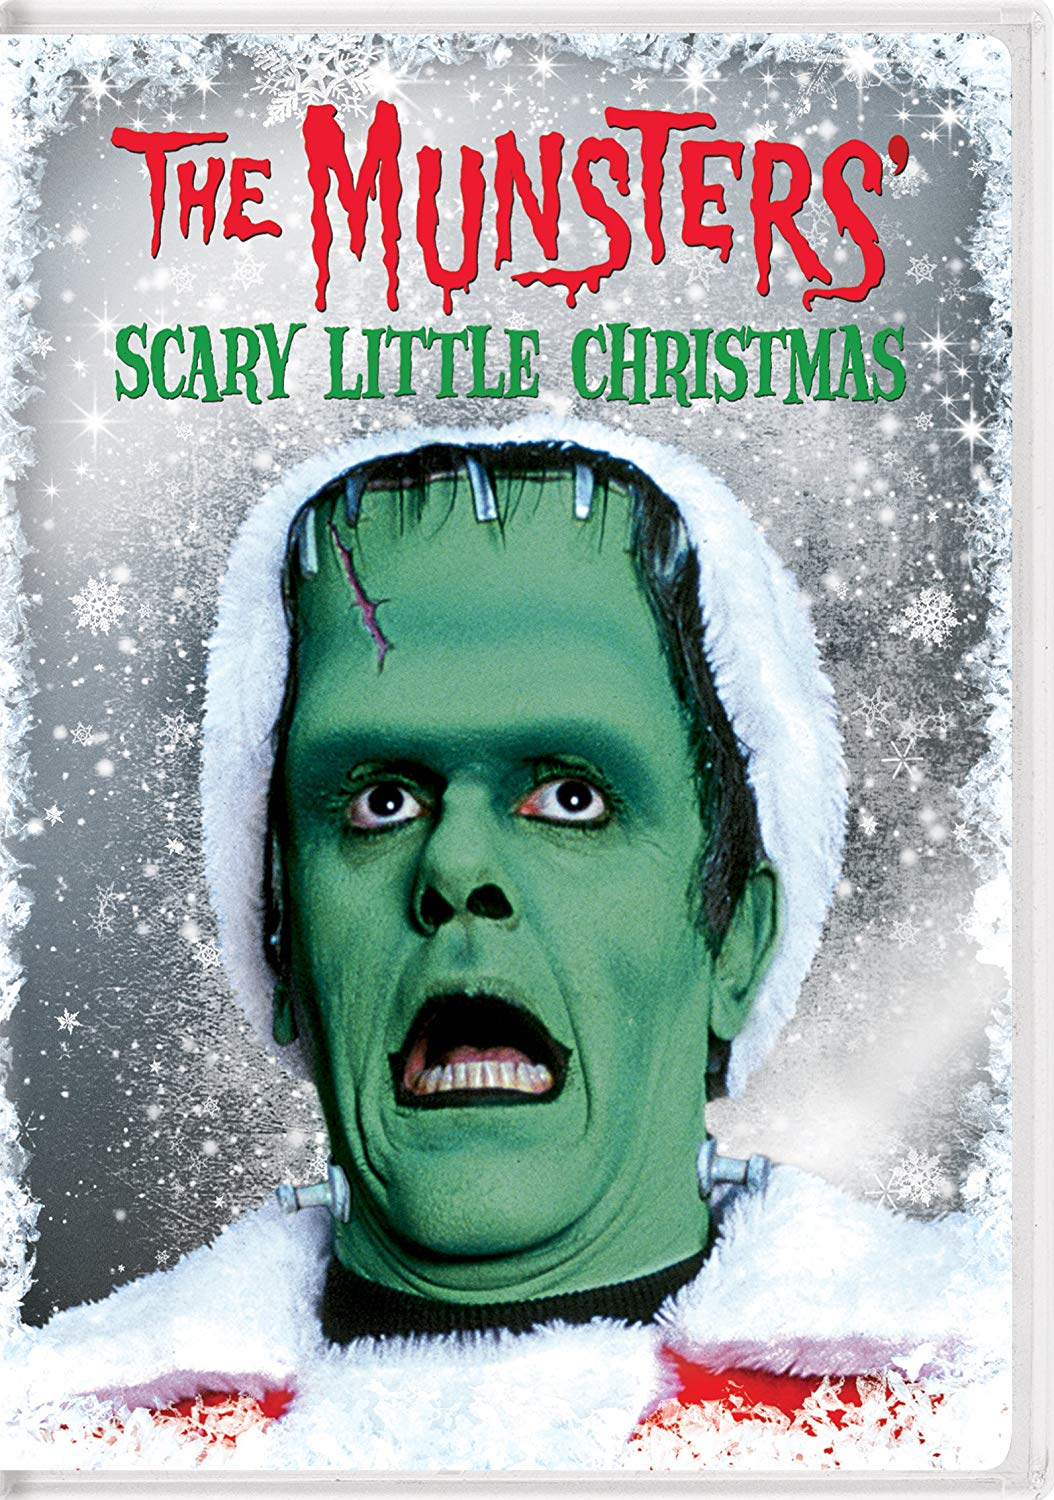 The Munsters Scary Little Christmas DVD